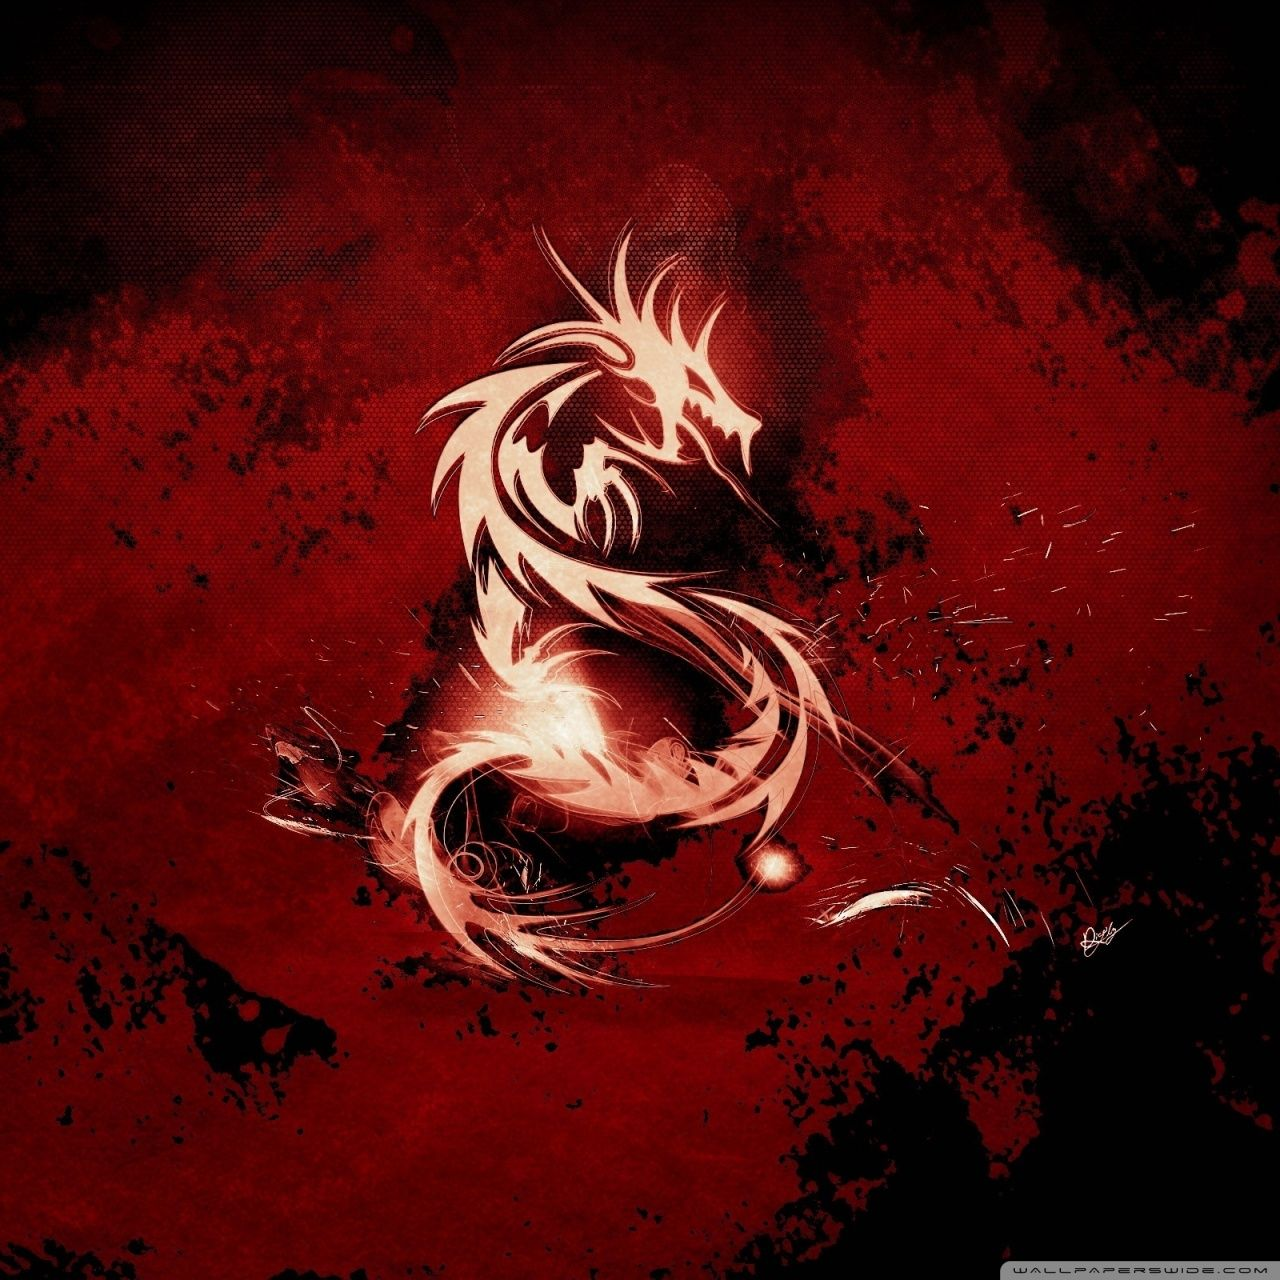 Dragon Android Wallpapers - Top Free Dragon Android Backgrounds